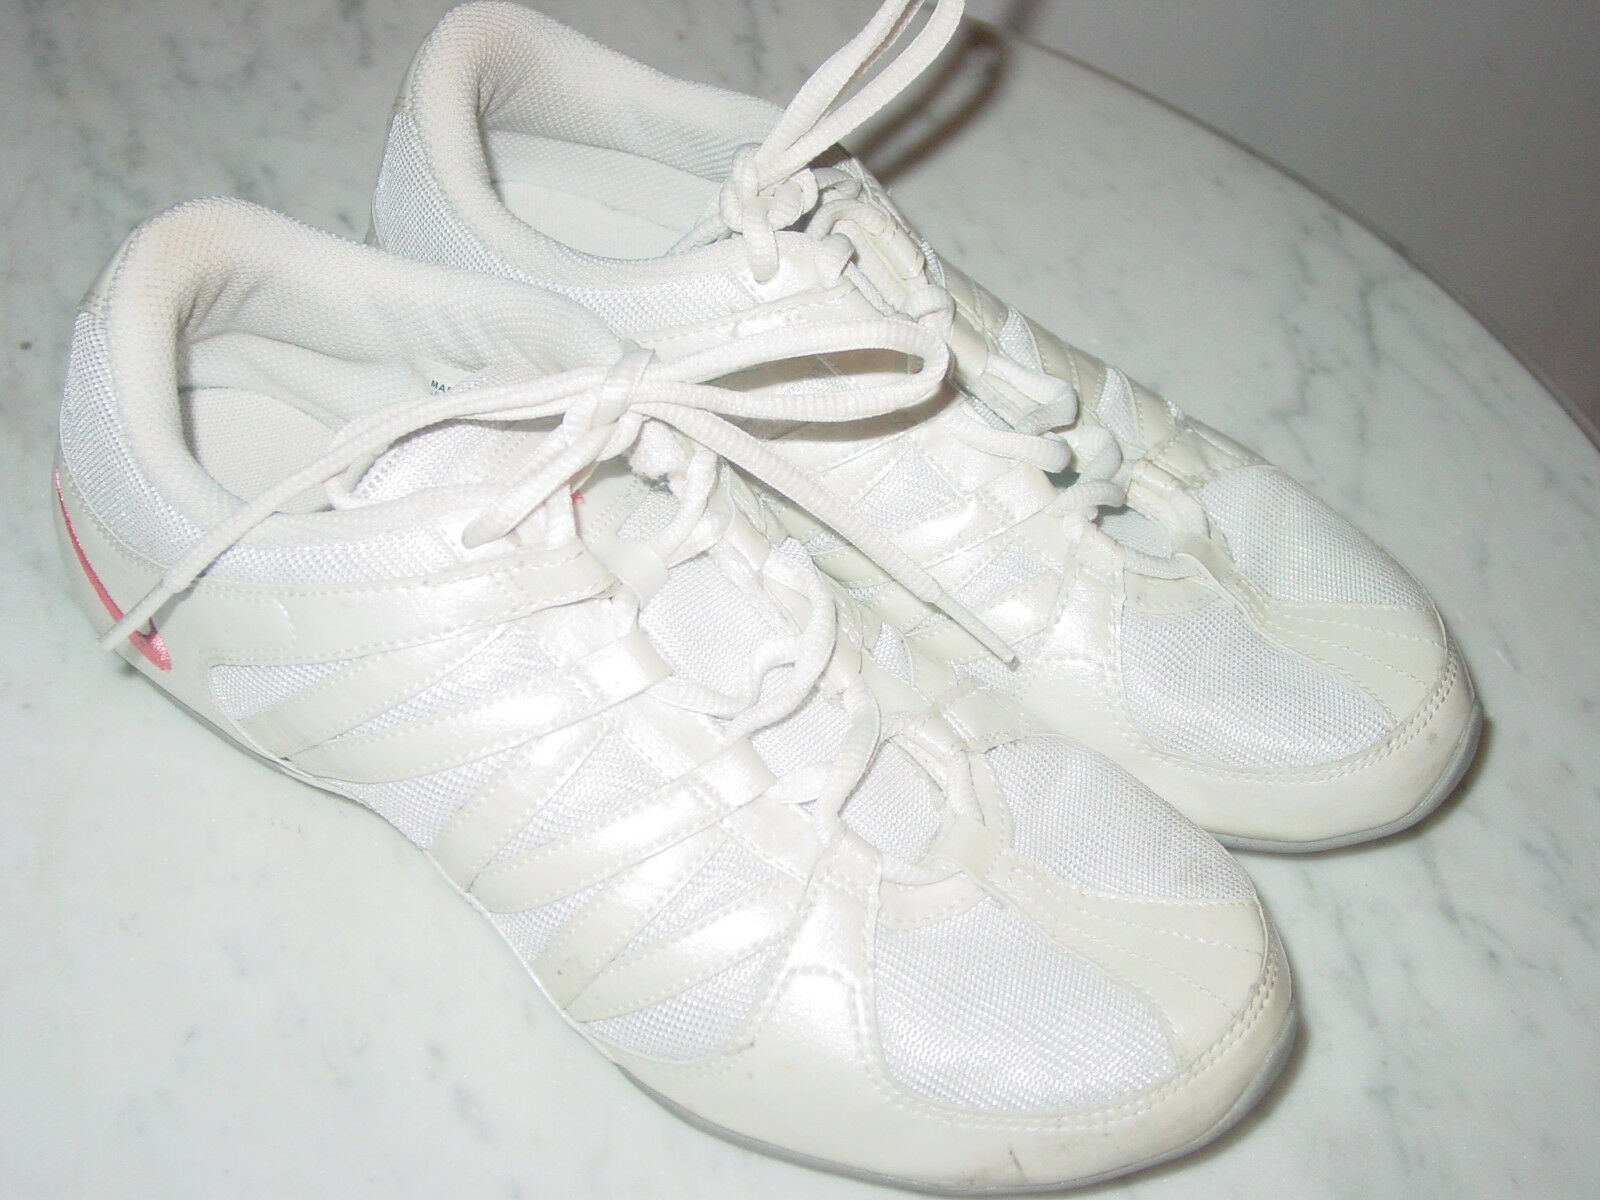 2008  s nike musique iv Blanc fitness  / Rose  cheer danse fitness Blanc chaussures!taille 9 90eb6c